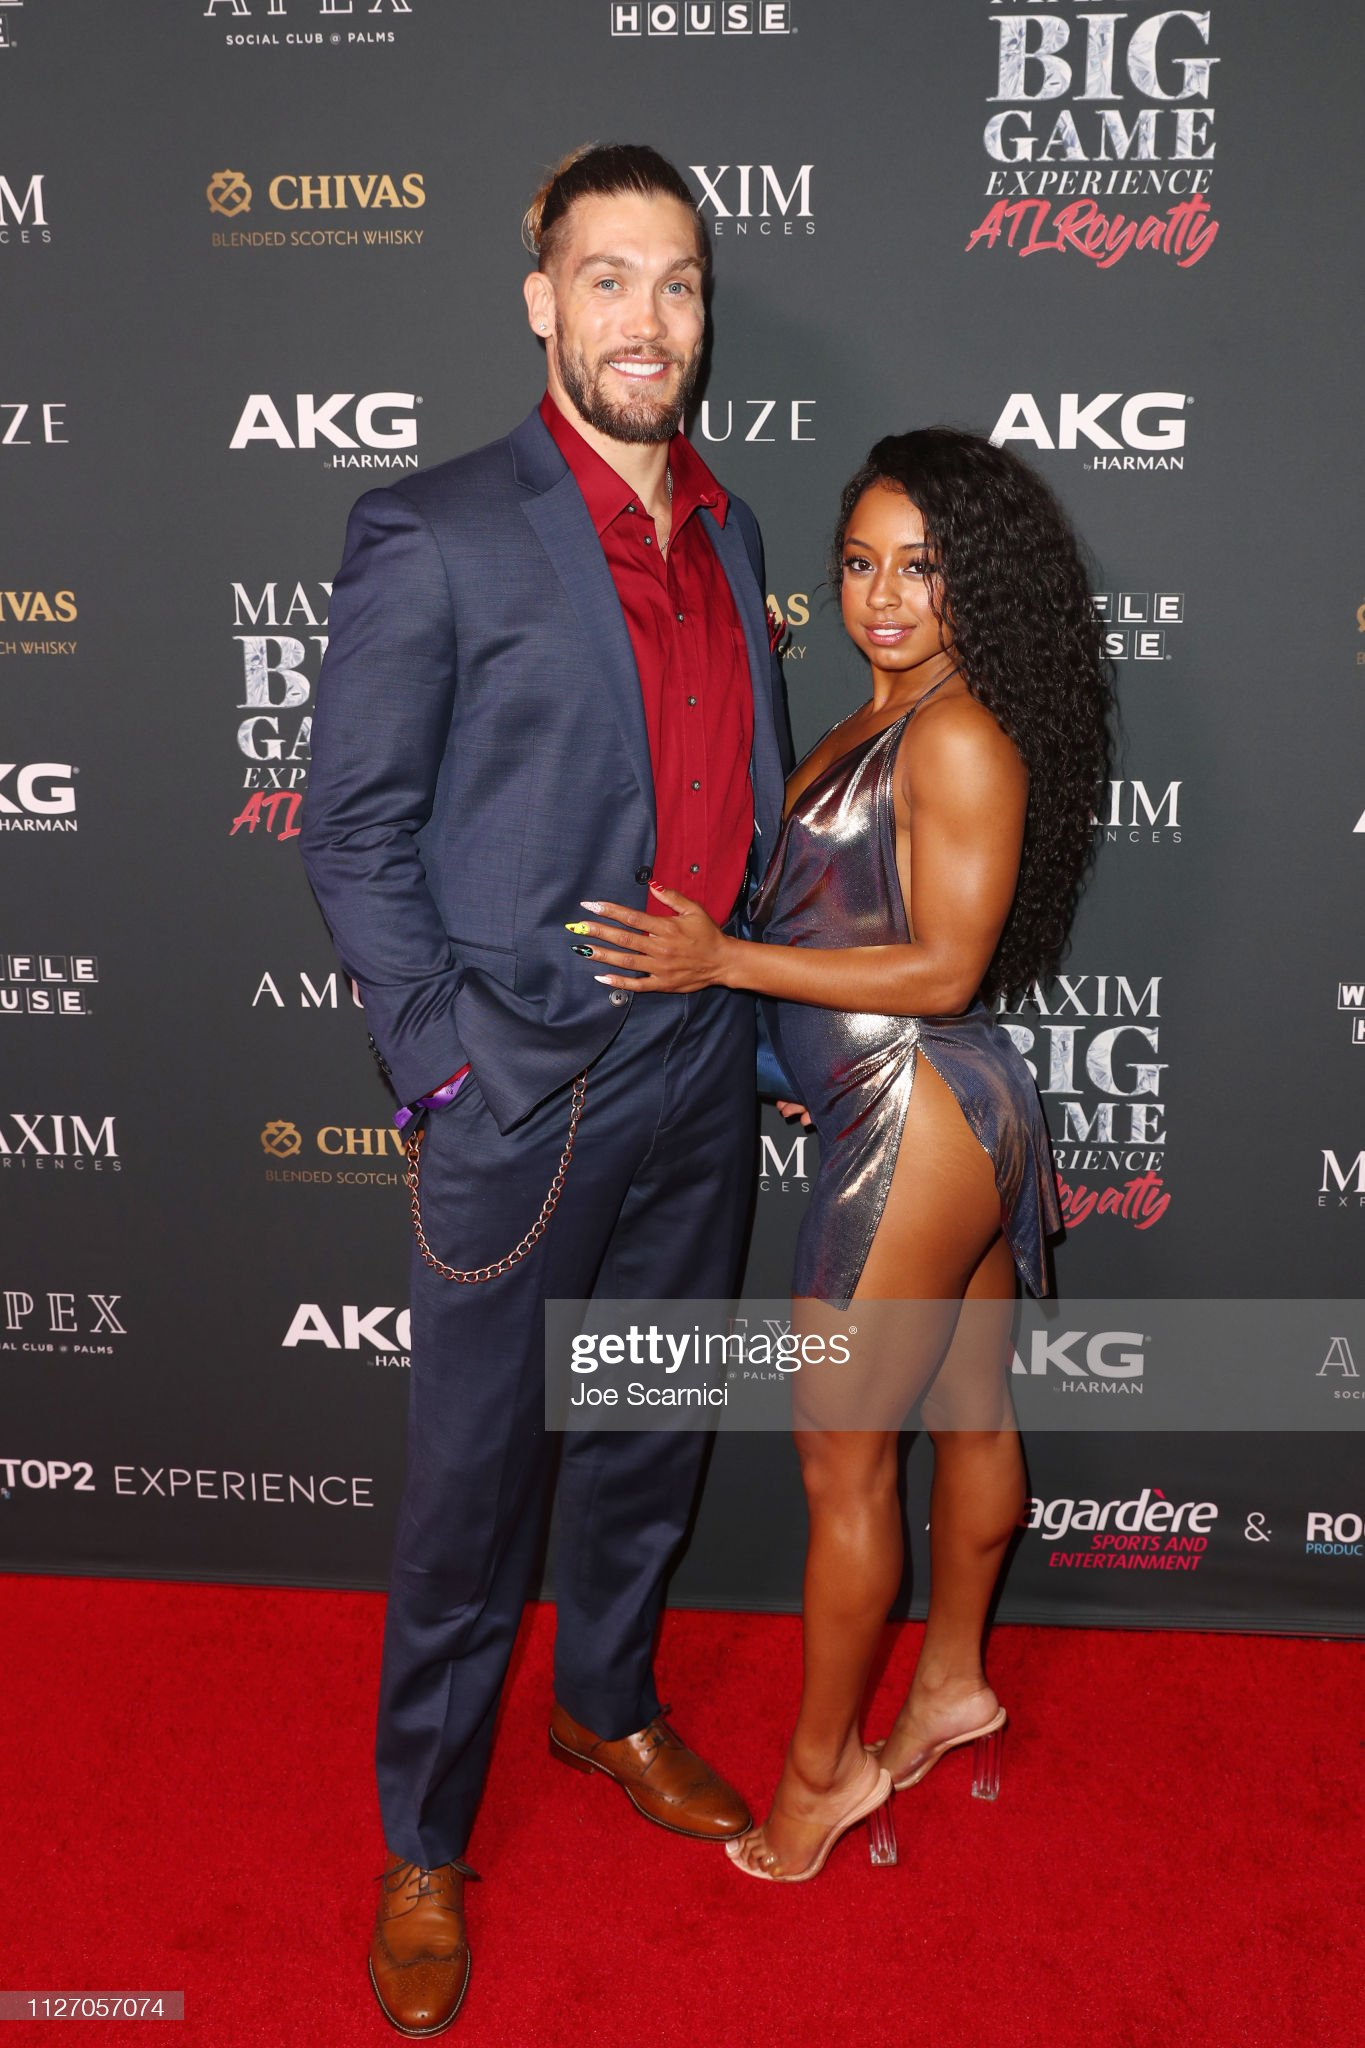 ¿Cuánto mide Qimmah Russo? - Real height Tyler-boyd-and-qimmah-russo-attend-the-maxim-big-game-experience-at-picture-id1127057074?s=2048x2048